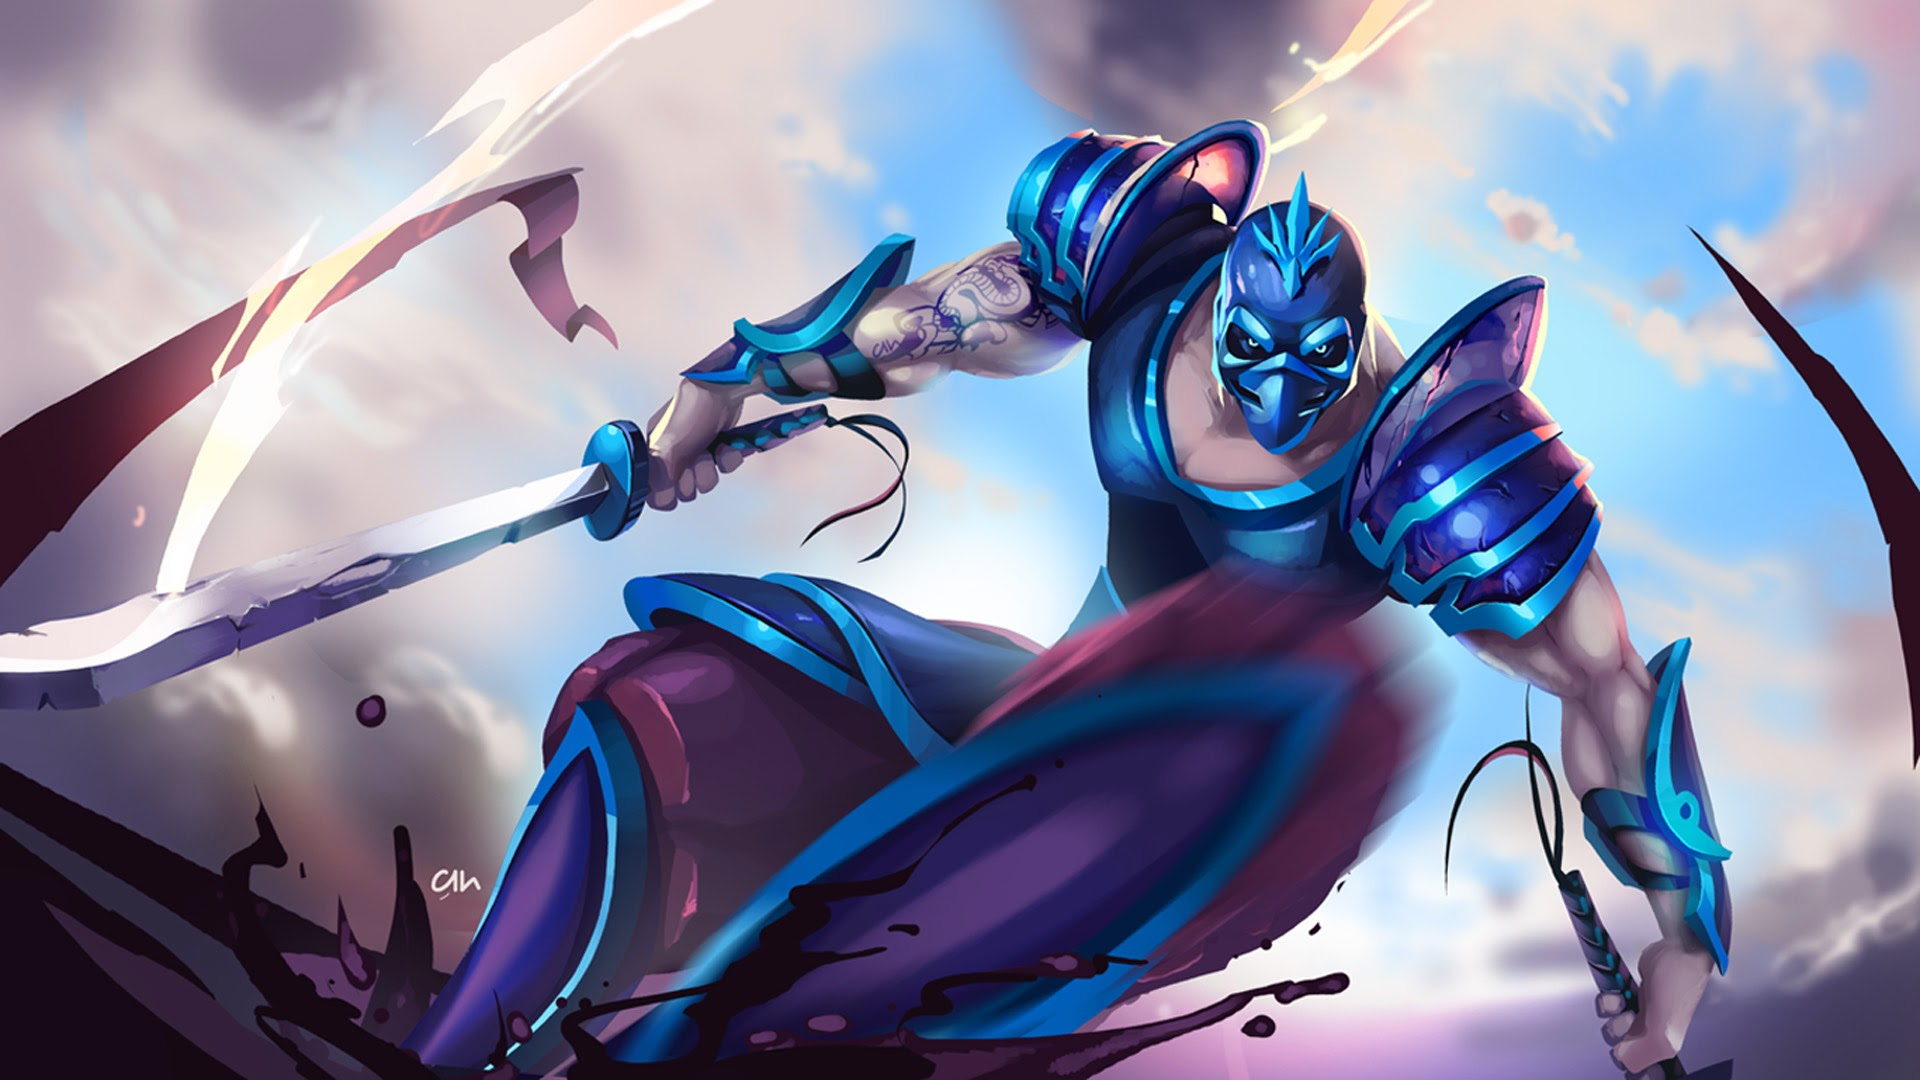 Game wallpaper league of legends yasuo wallpapers iphone with high - Shen League Of Legends 1t Wallpaper Hd